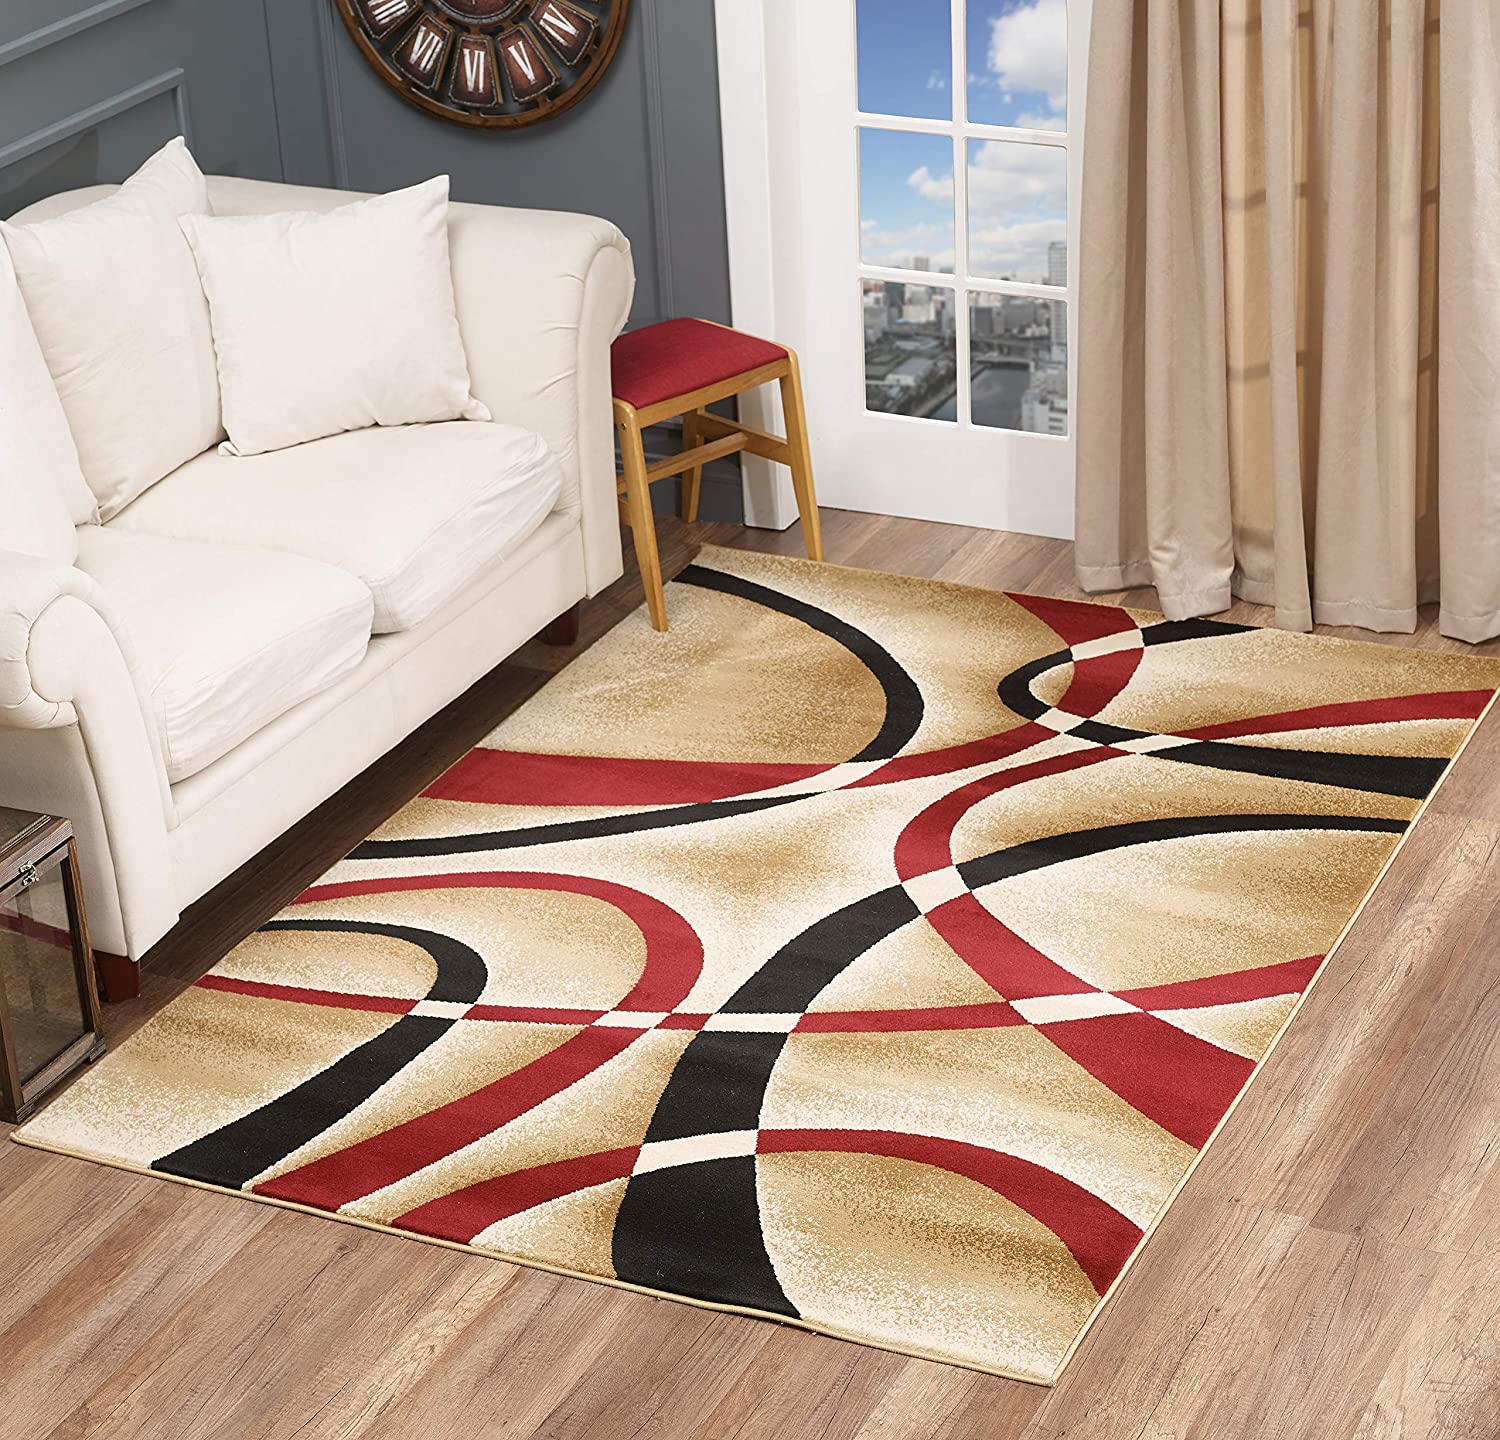 Golden Rugs Modern Area Rug Swirls Carpet Bedroom Living Room Contemporary Dining Accent Sevilla Collection 4816 (8x10, Dark Red)